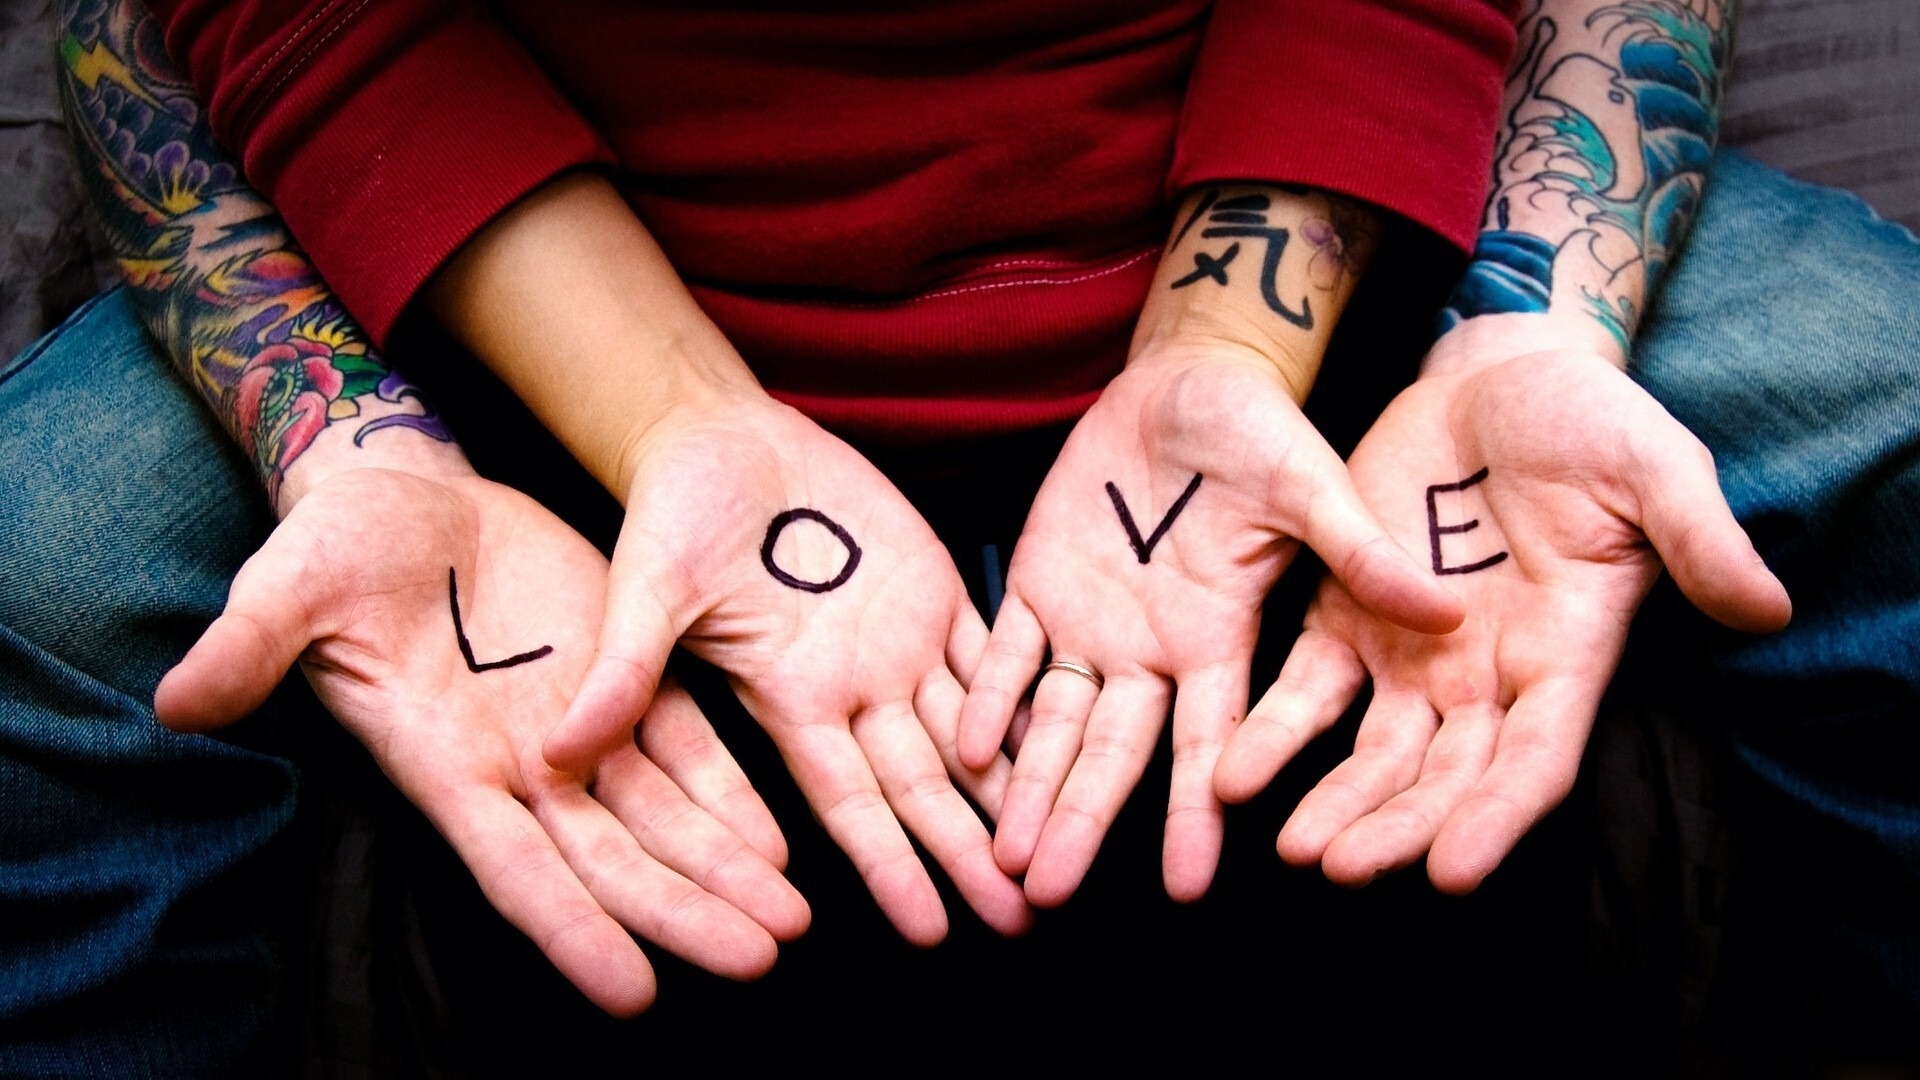 Wallpaper download hd love - 21372 Views 10357 Download Stunning Hd Photo Of Love Word In Hand